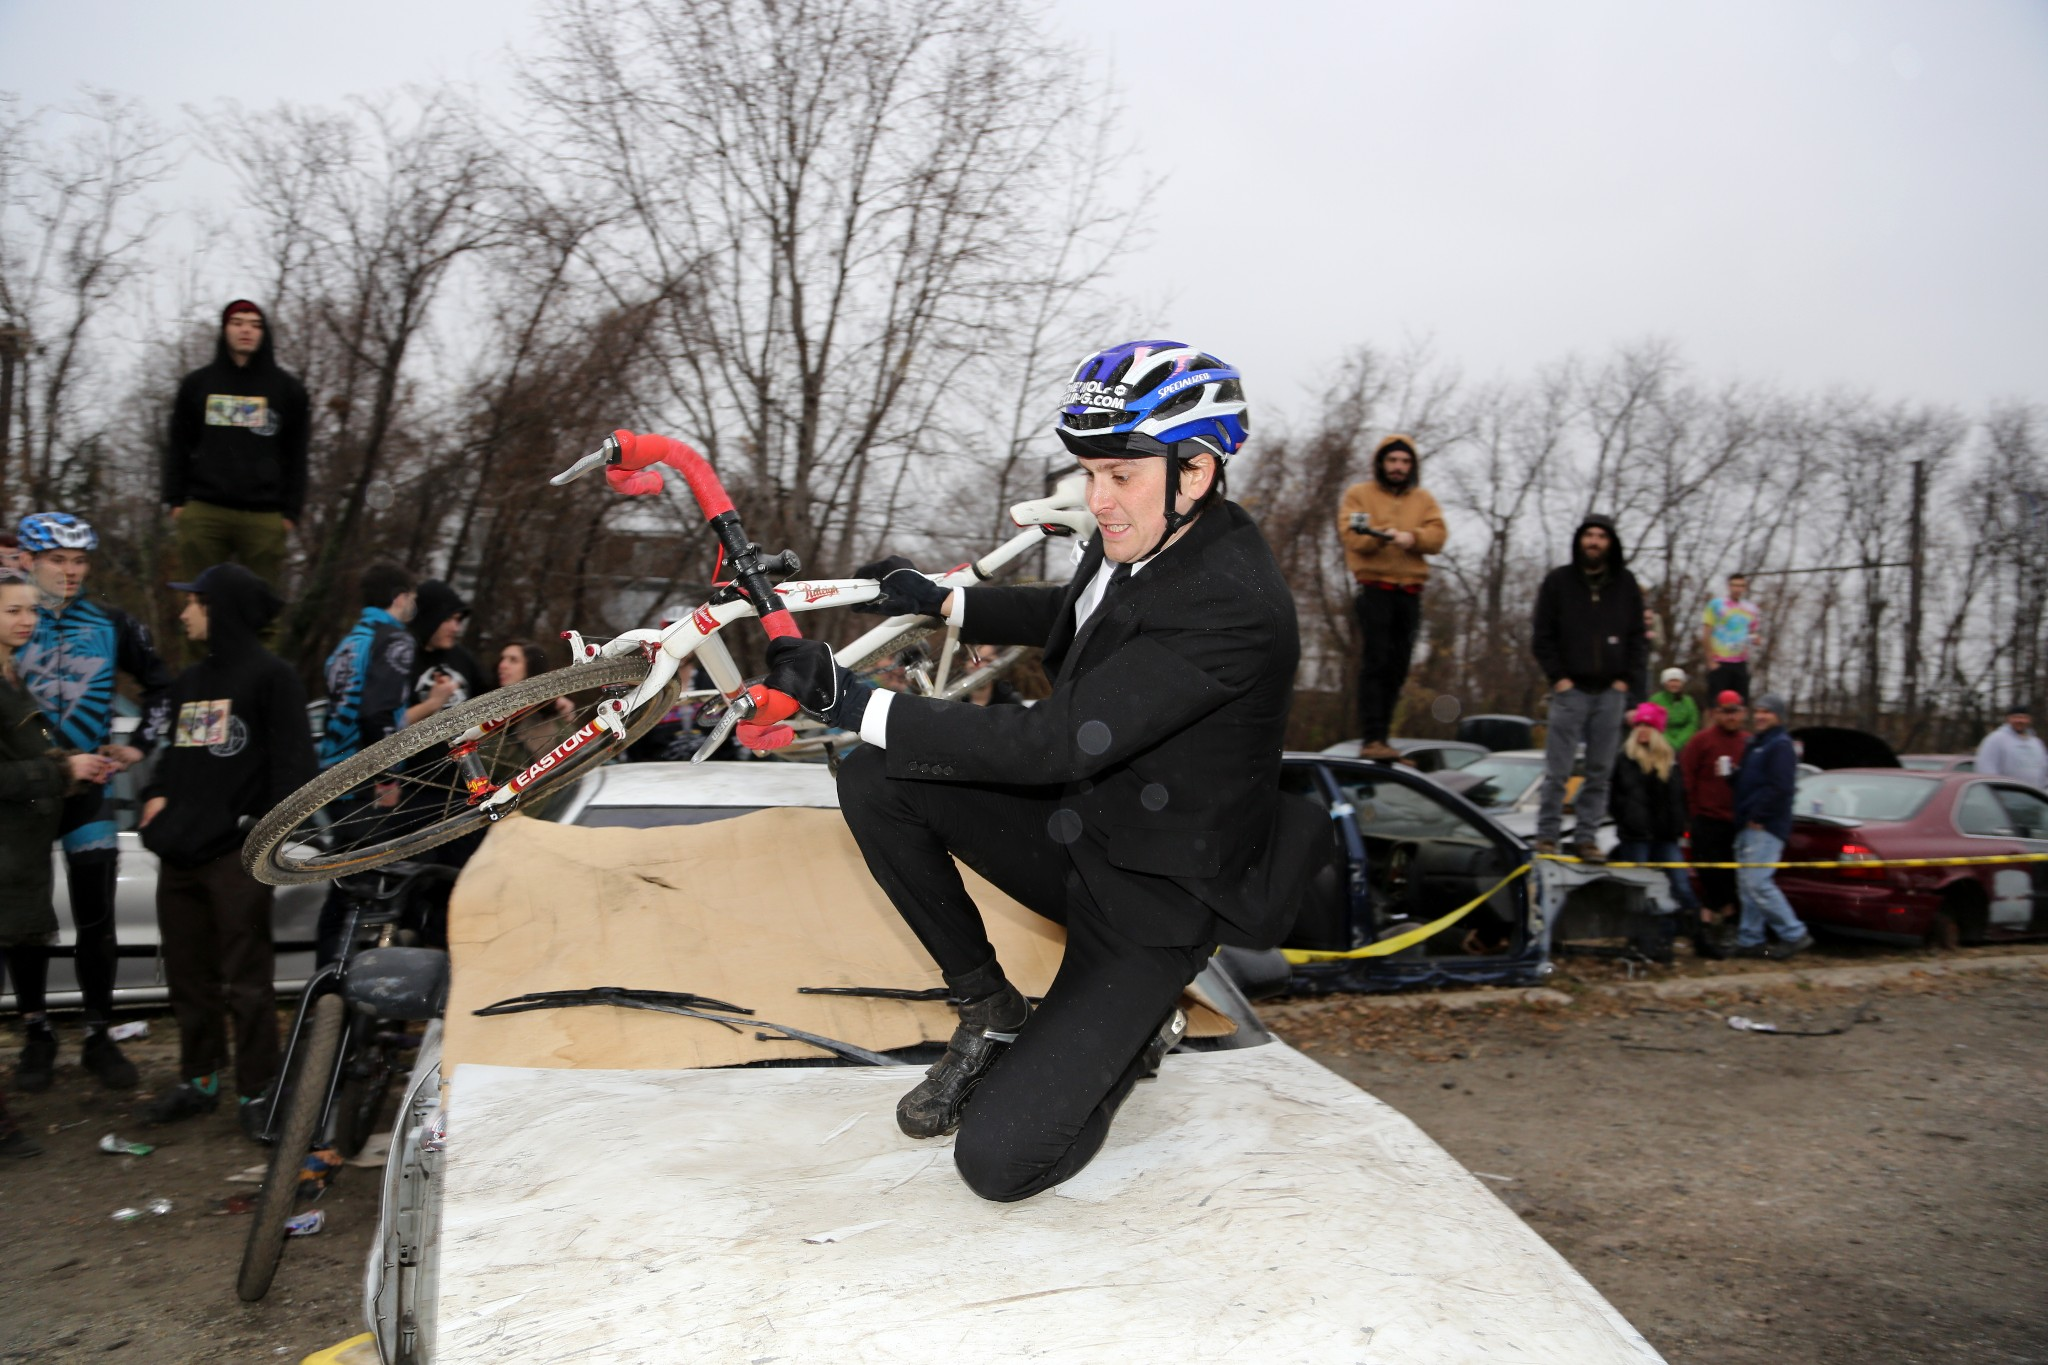 Jordan knee slides over a barrier during a cross race, looking mighty stylish.